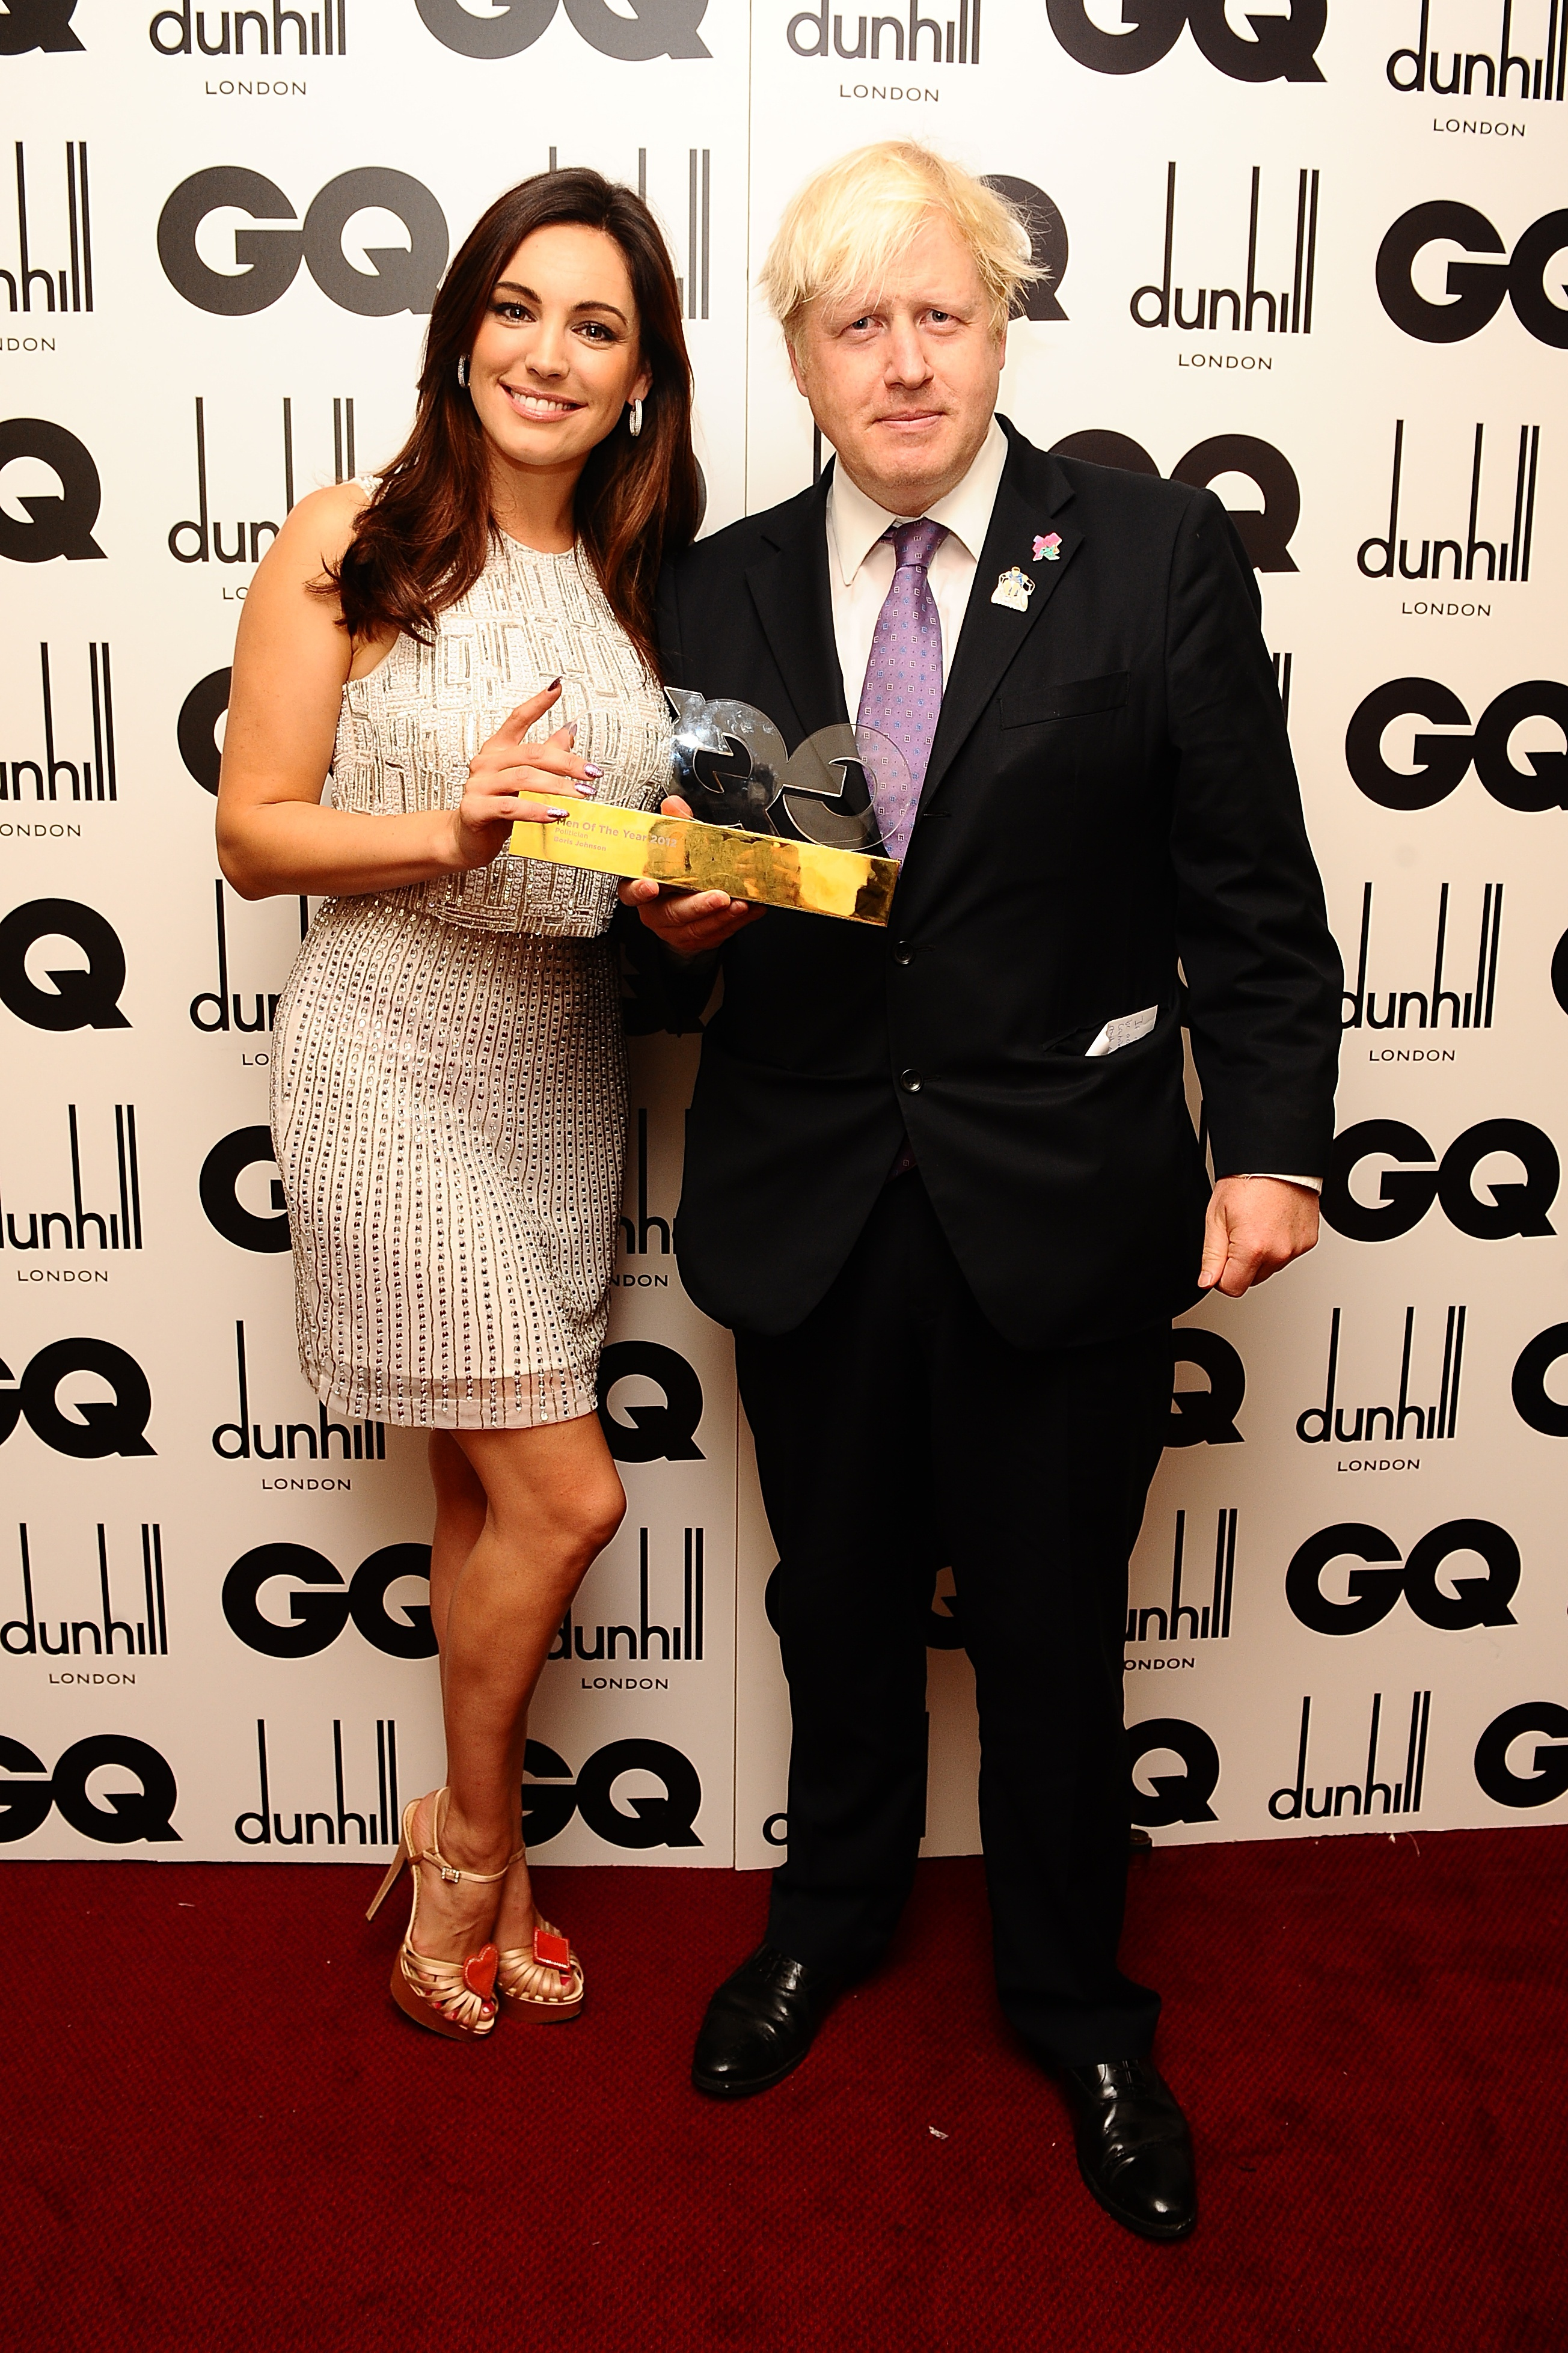 Kelly Brook with Politician Of The Year London Mayor Boris Johnson at the 2012 GQ Men Of The Year Awards at the Royal Opera House, Bow Street, London